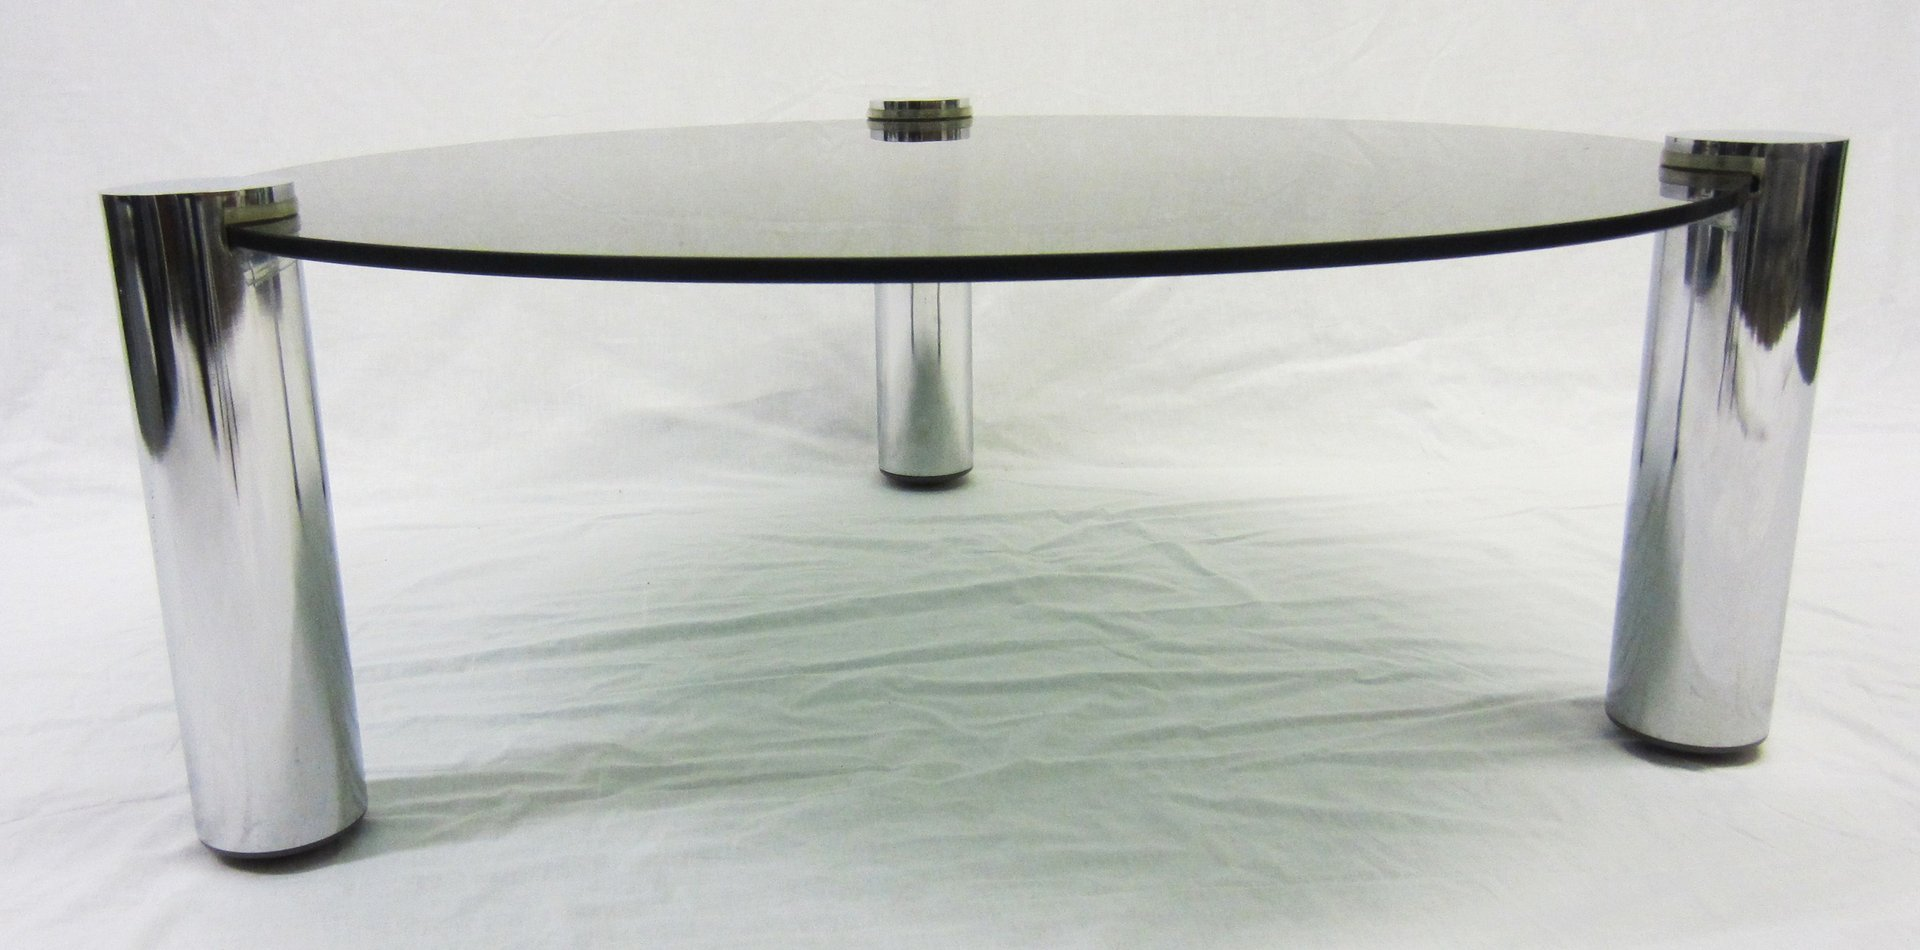 round glass and chrome coffee table from pieff 1960s en vente sur pamono. Black Bedroom Furniture Sets. Home Design Ideas